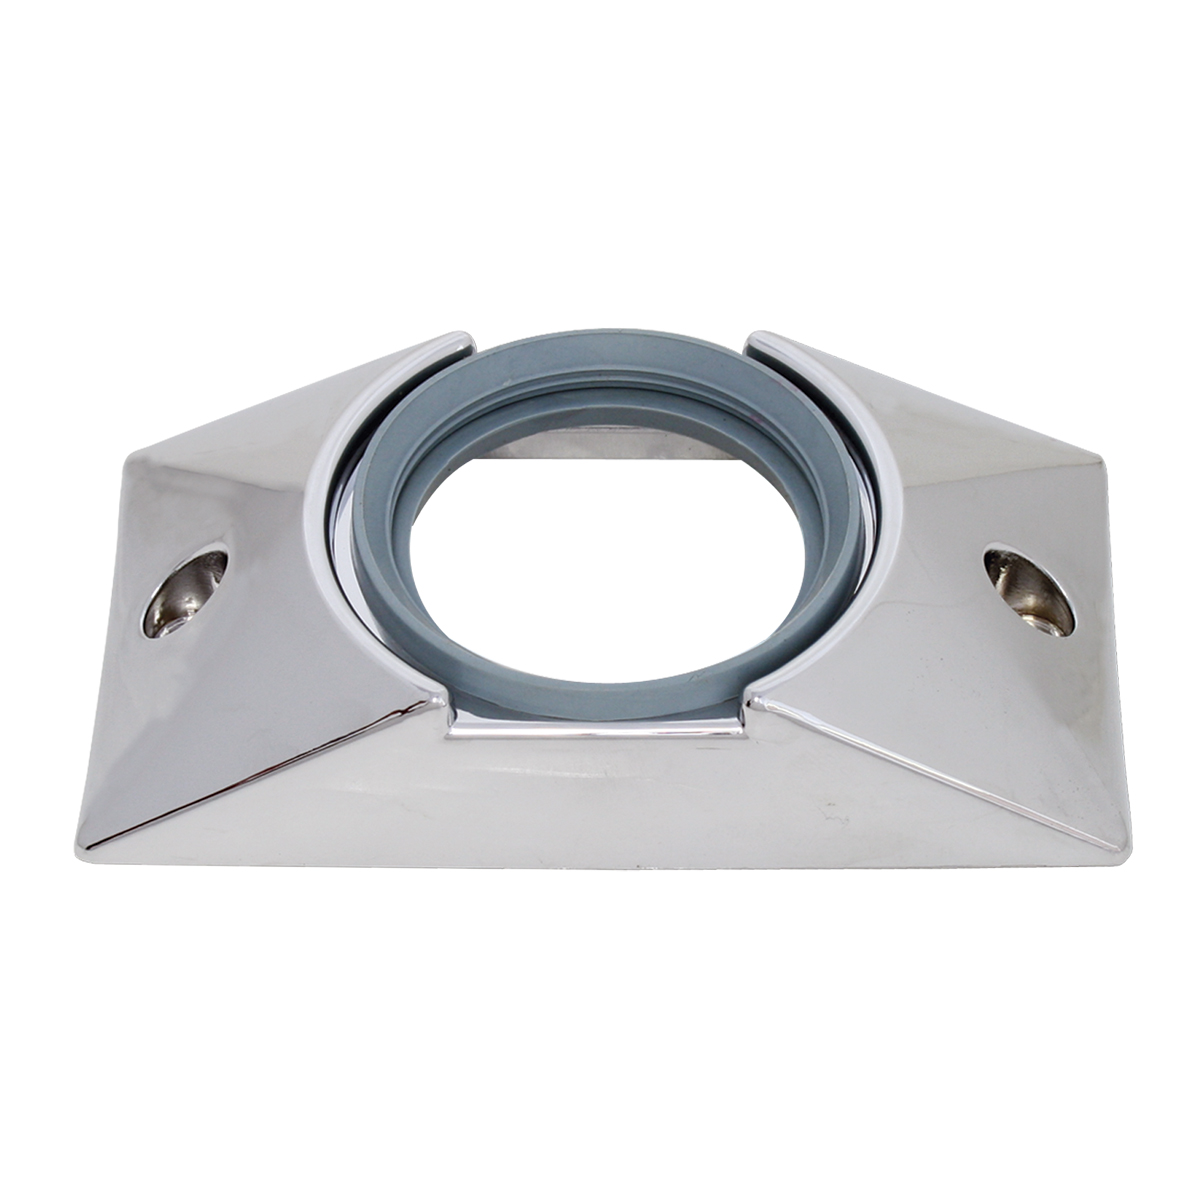 """82629 Chrome Plastic Mounting Bracket with Grommet for 2-1/2"""" Round Light"""